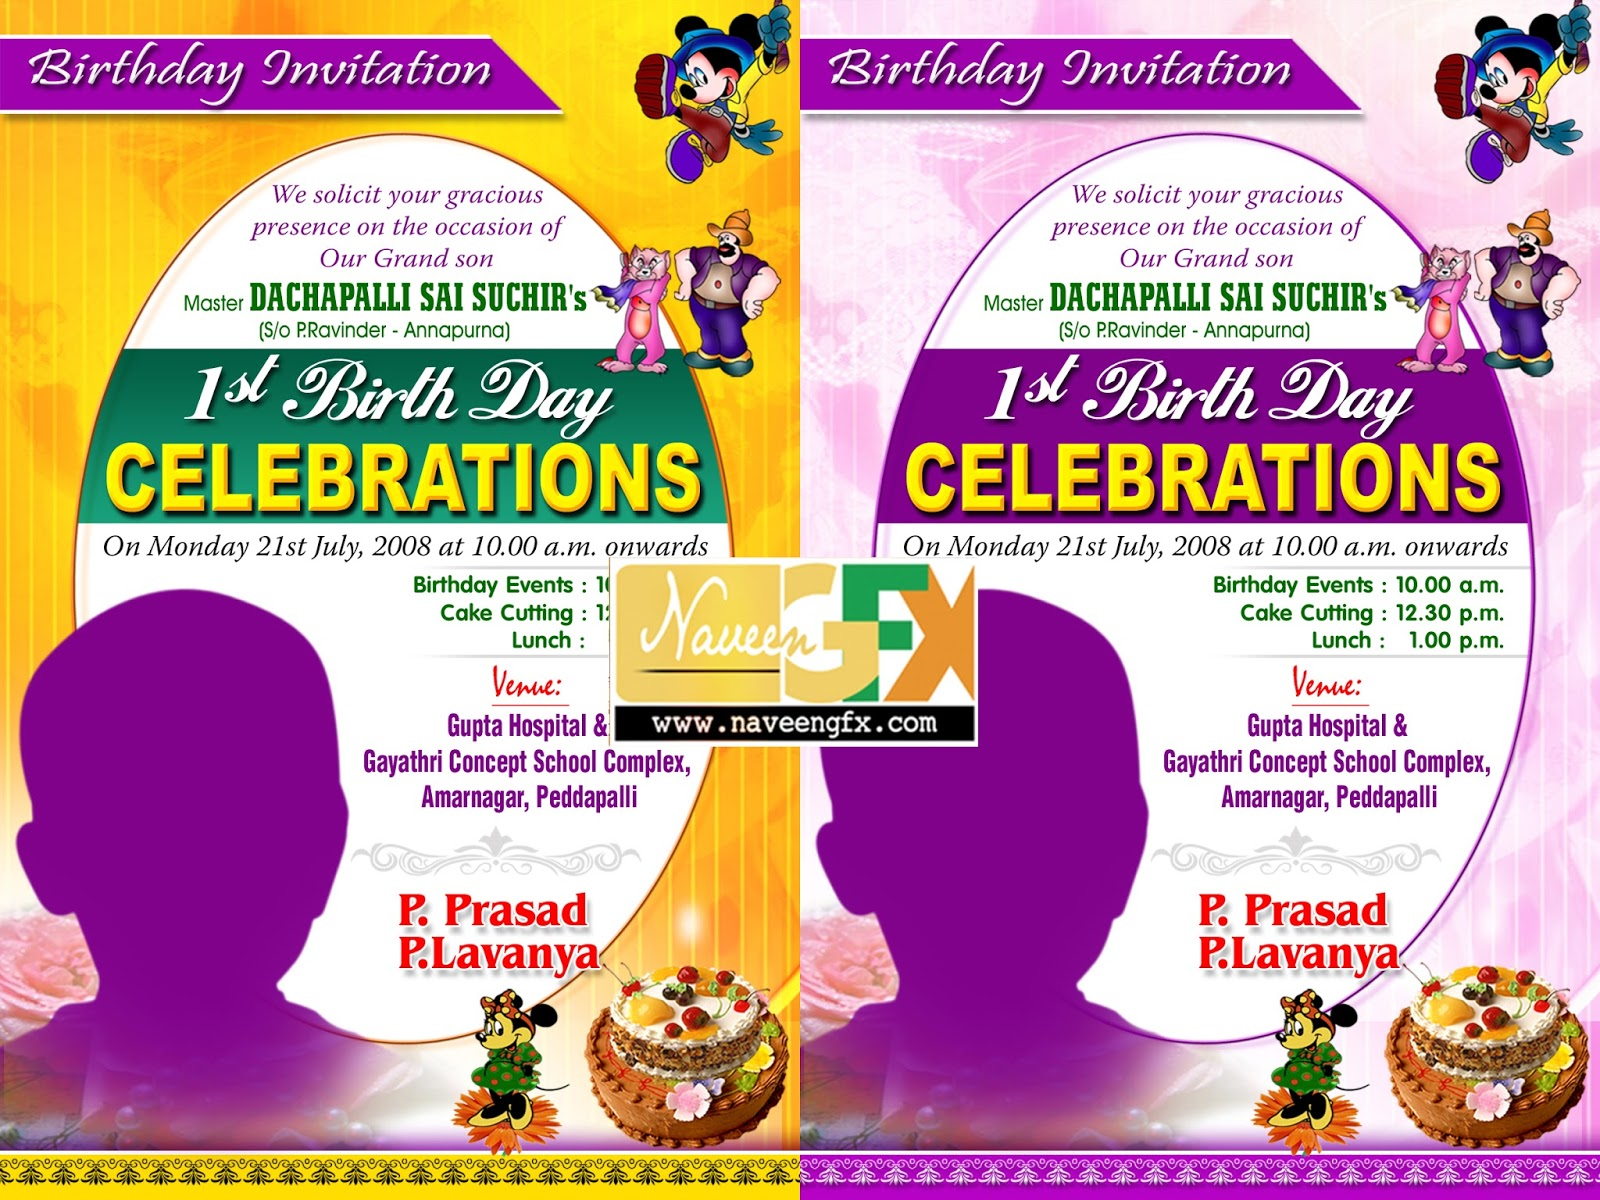 Cool Birthday Invitations Cards Psd Printable Template Free - Birthday invitation photoshop template